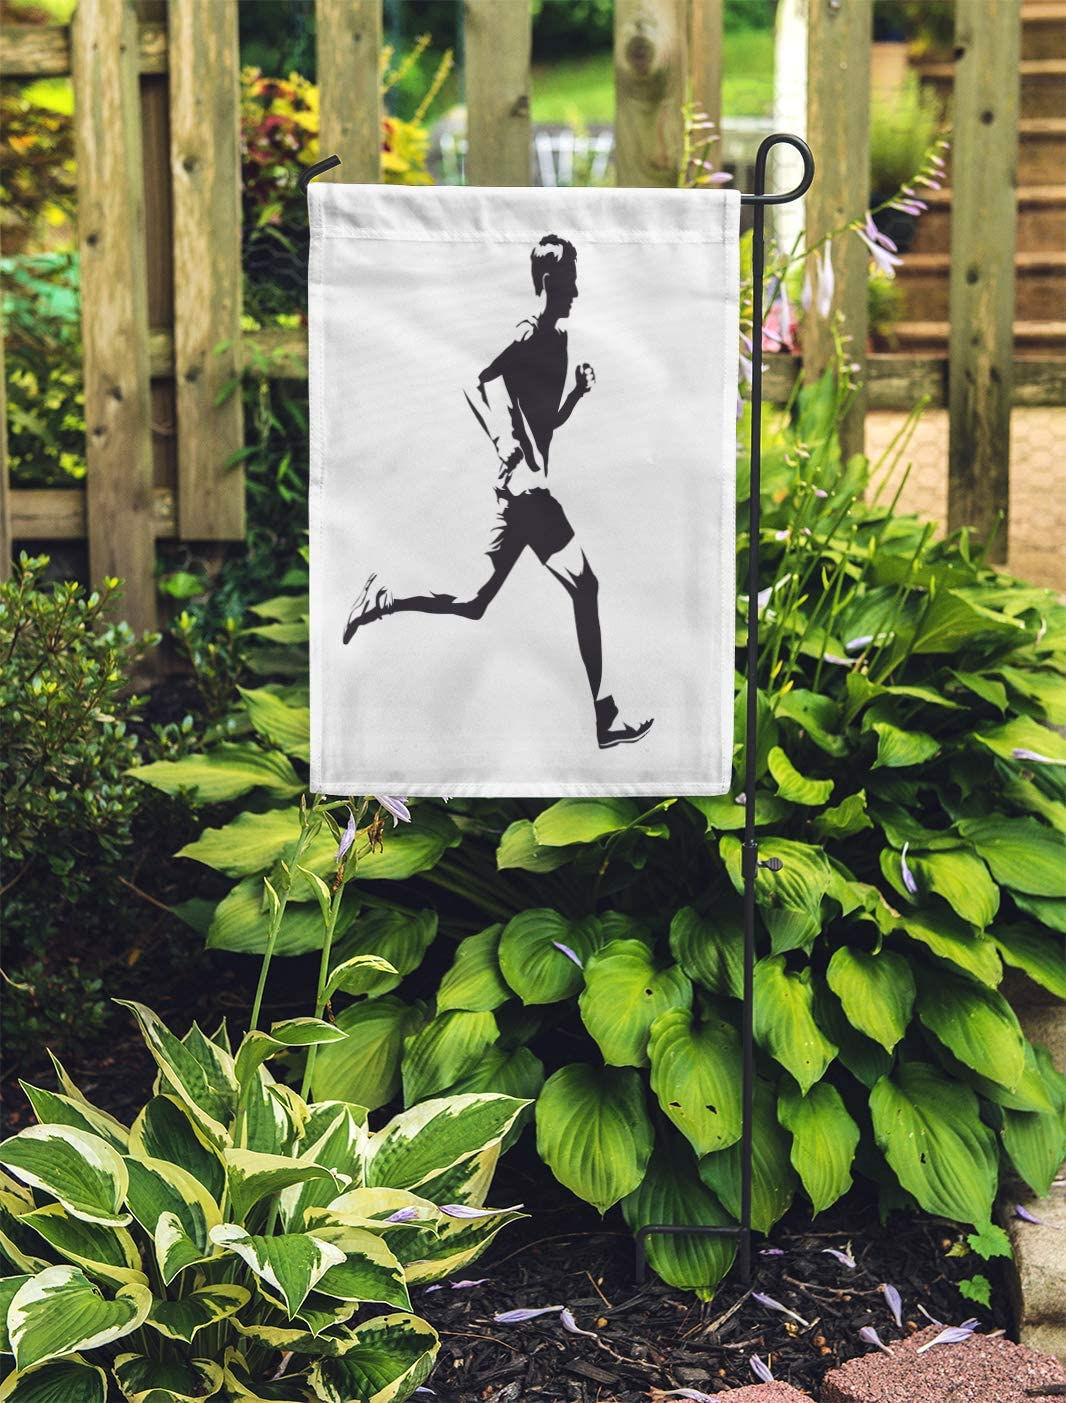 Details about  /Pictograph Insert Green Transparent Running Man Jumbo 40M STRAIGHT on from here